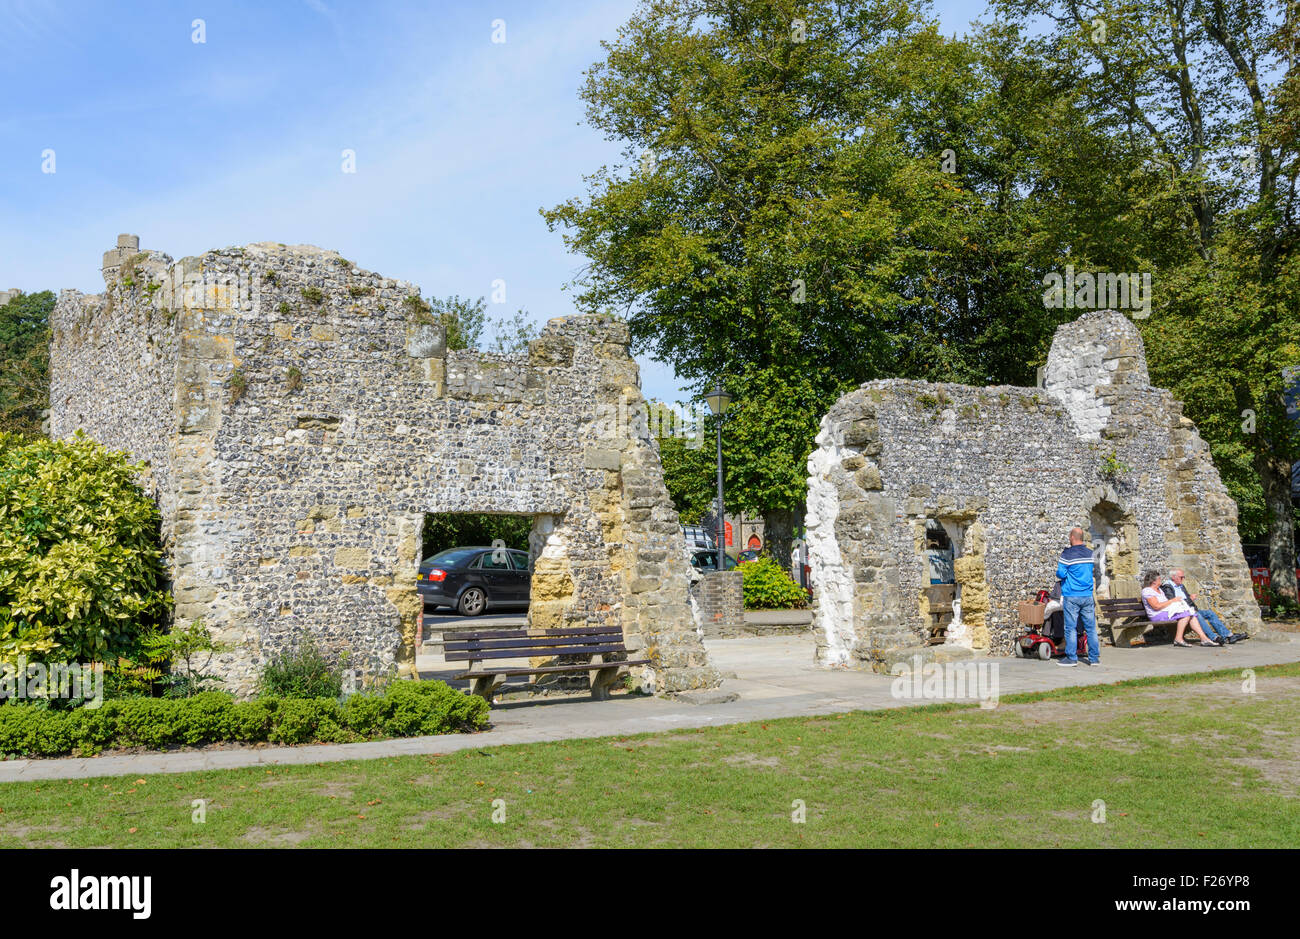 Ruins of Blackfriars Dominican Friary in Arundel, West Sussex, England, UK. - Stock Image